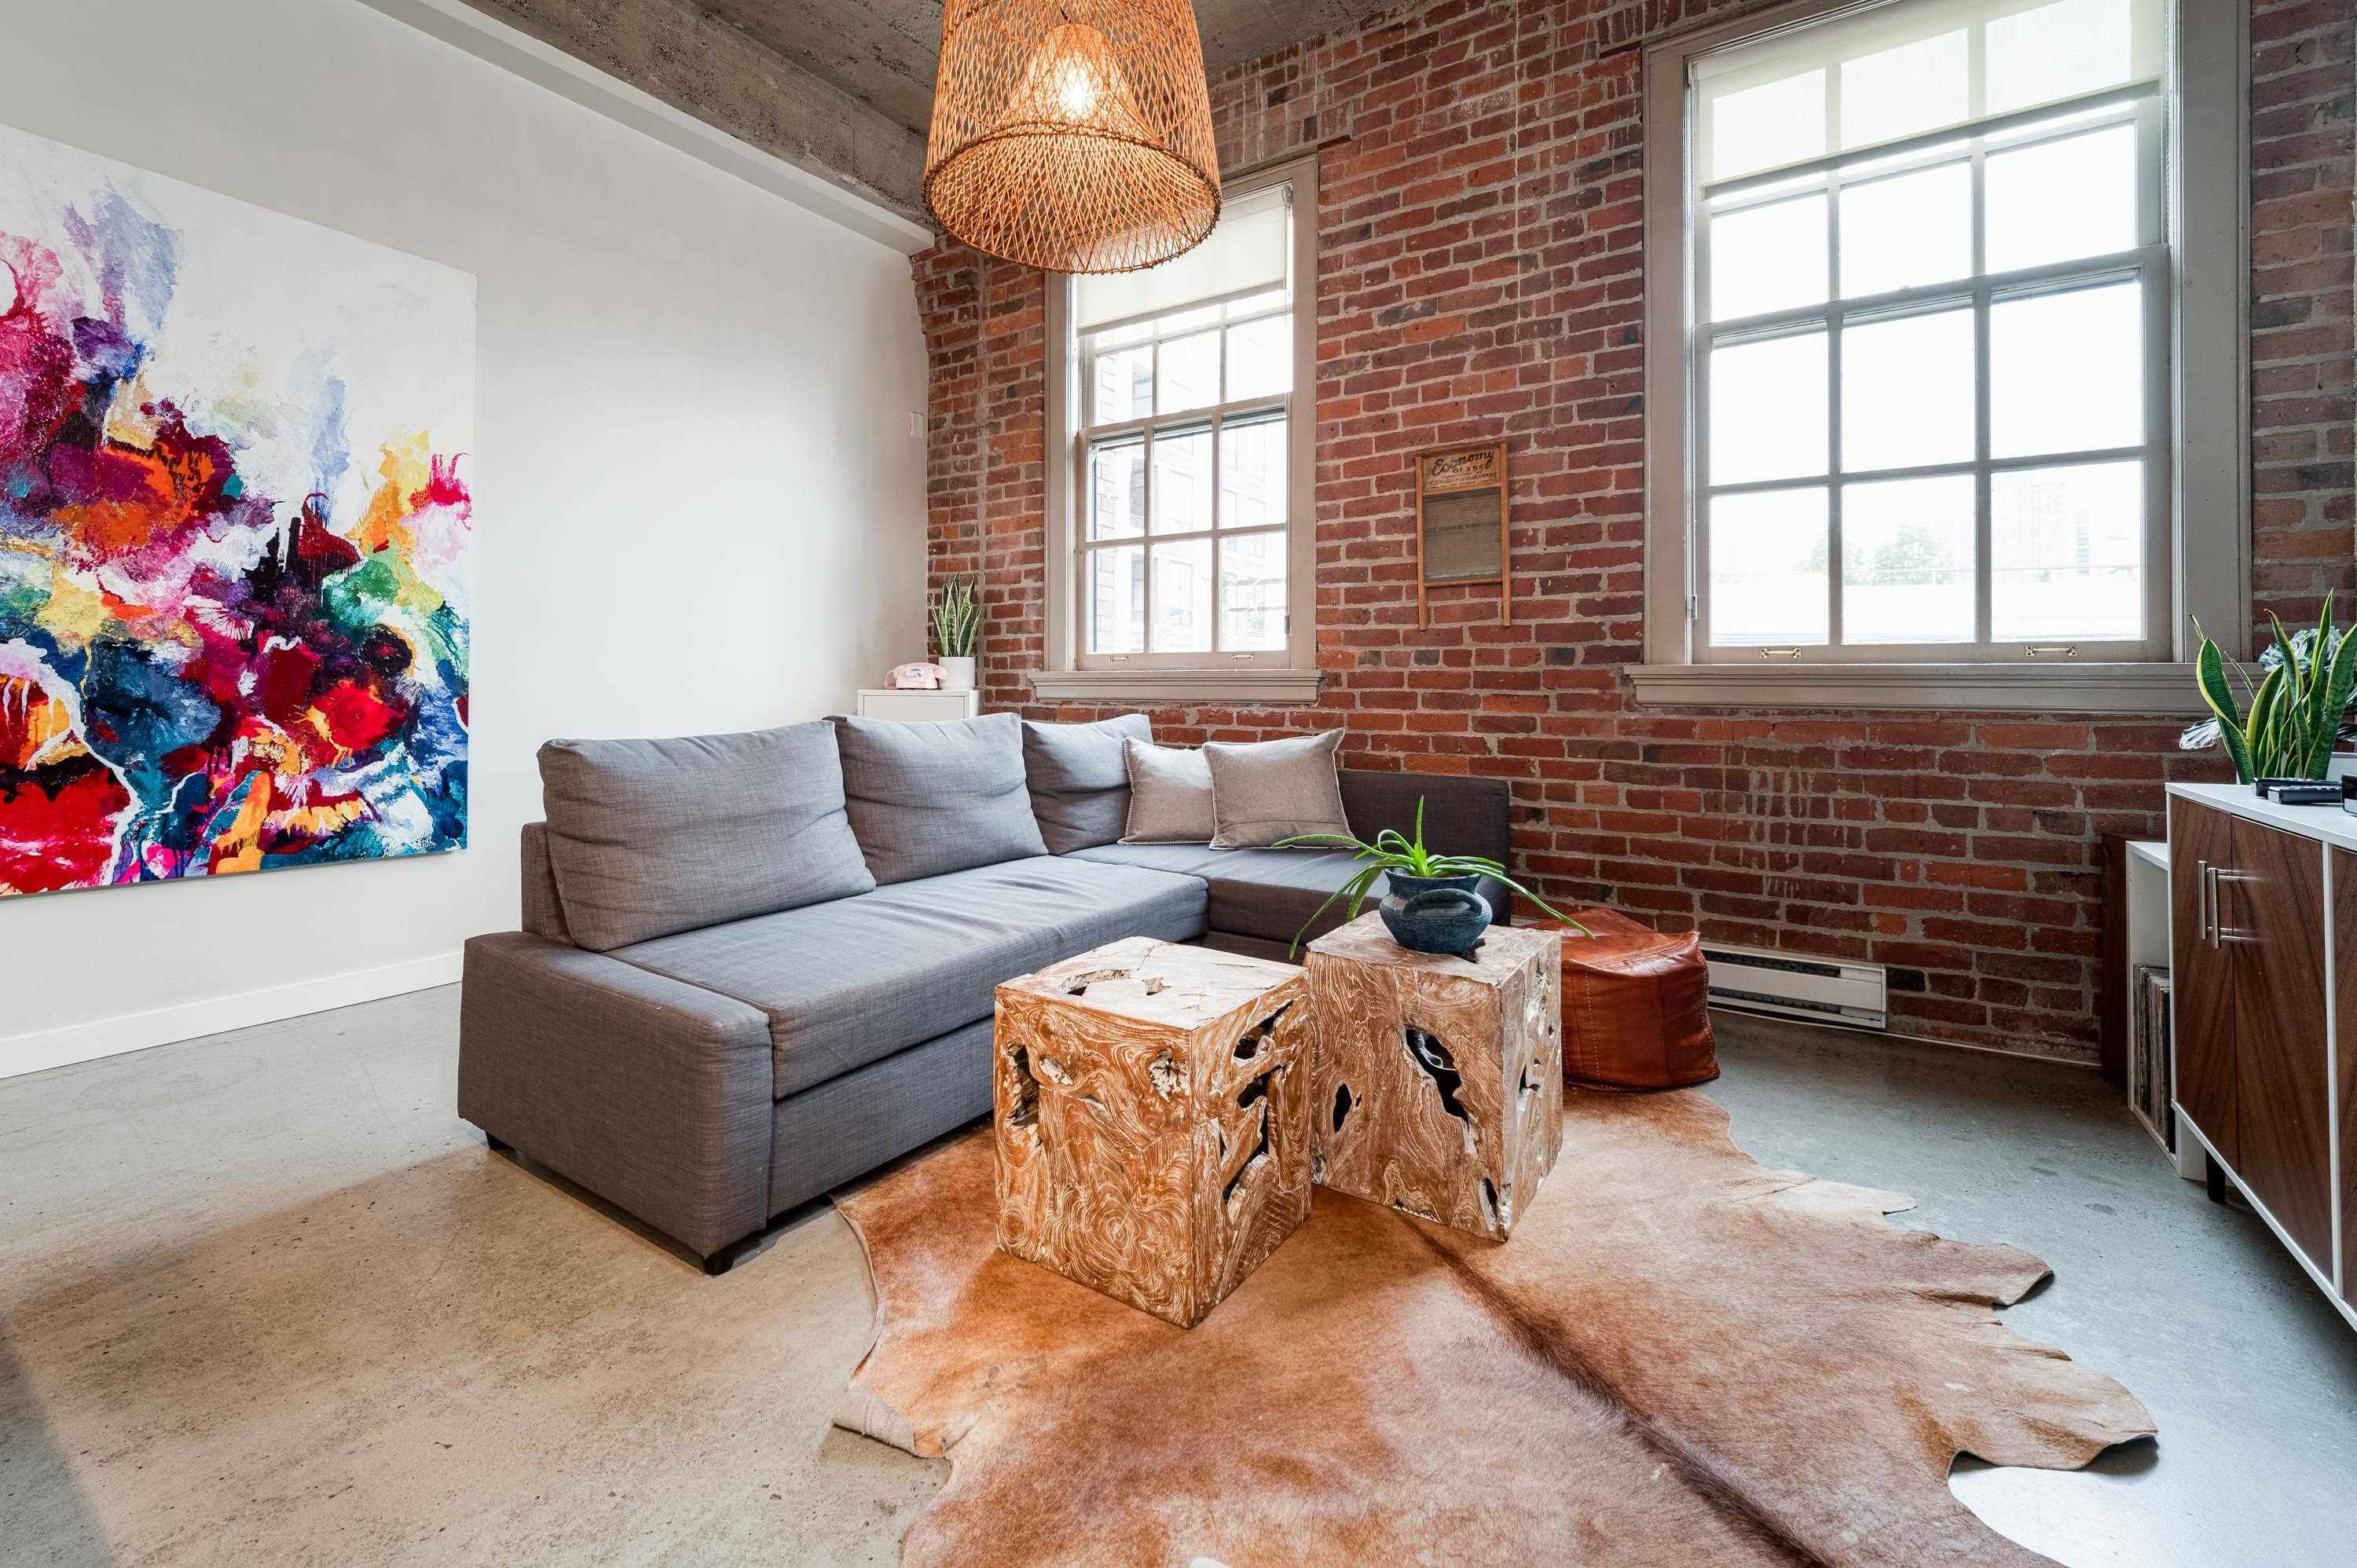 """Main Photo: 303 546 BEATTY Street in Vancouver: Downtown VW Condo for sale in """"Crane Lofts"""" (Vancouver West)  : MLS®# R2623149"""